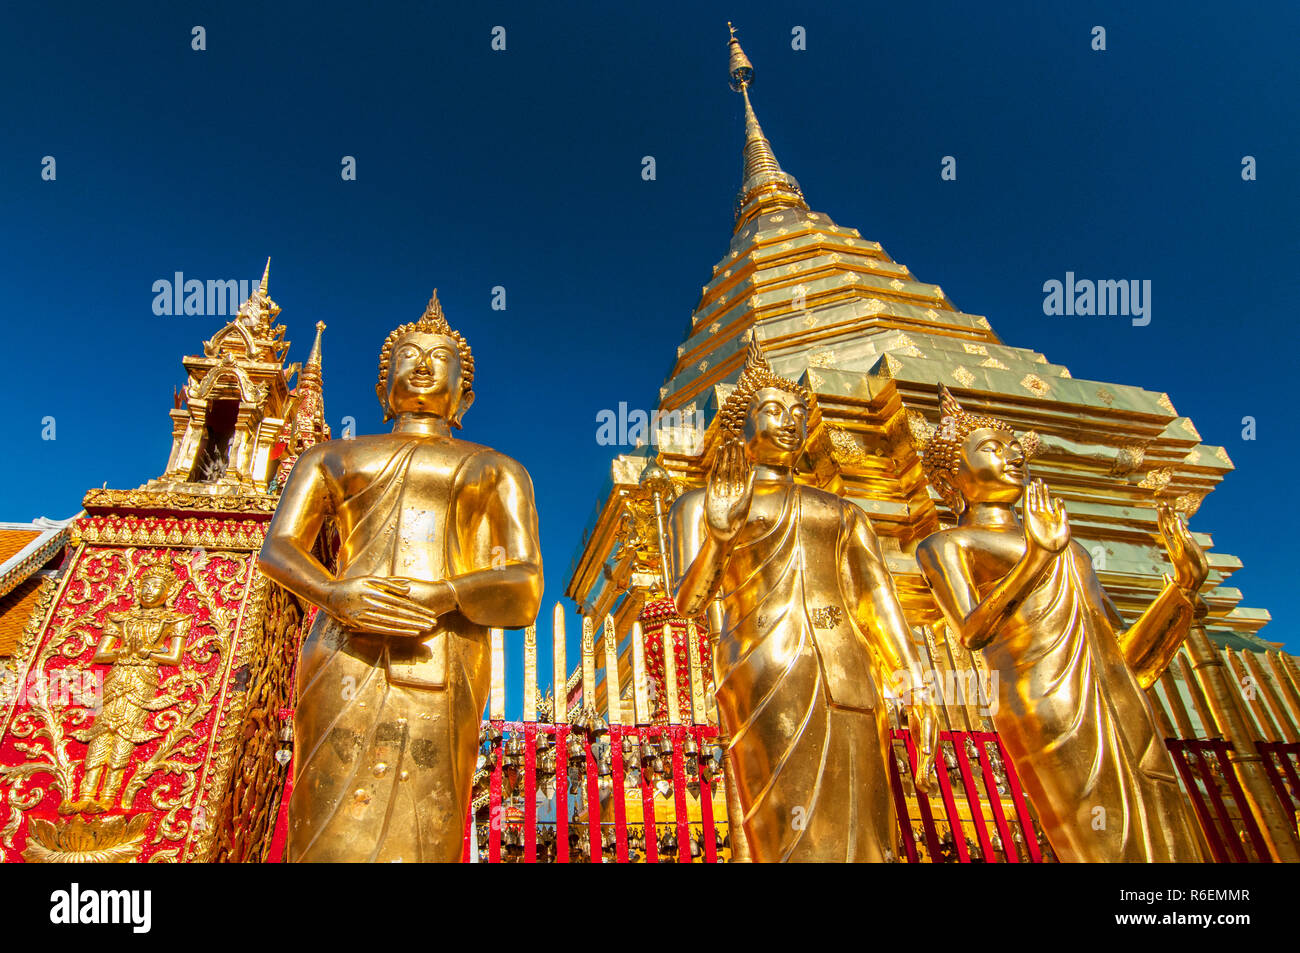 Golden Buddha Statues And A Golden Pagoda Or Chedi, Wat Phra That Doi Suthep, Chiang Mai, Thailand Stock Photo